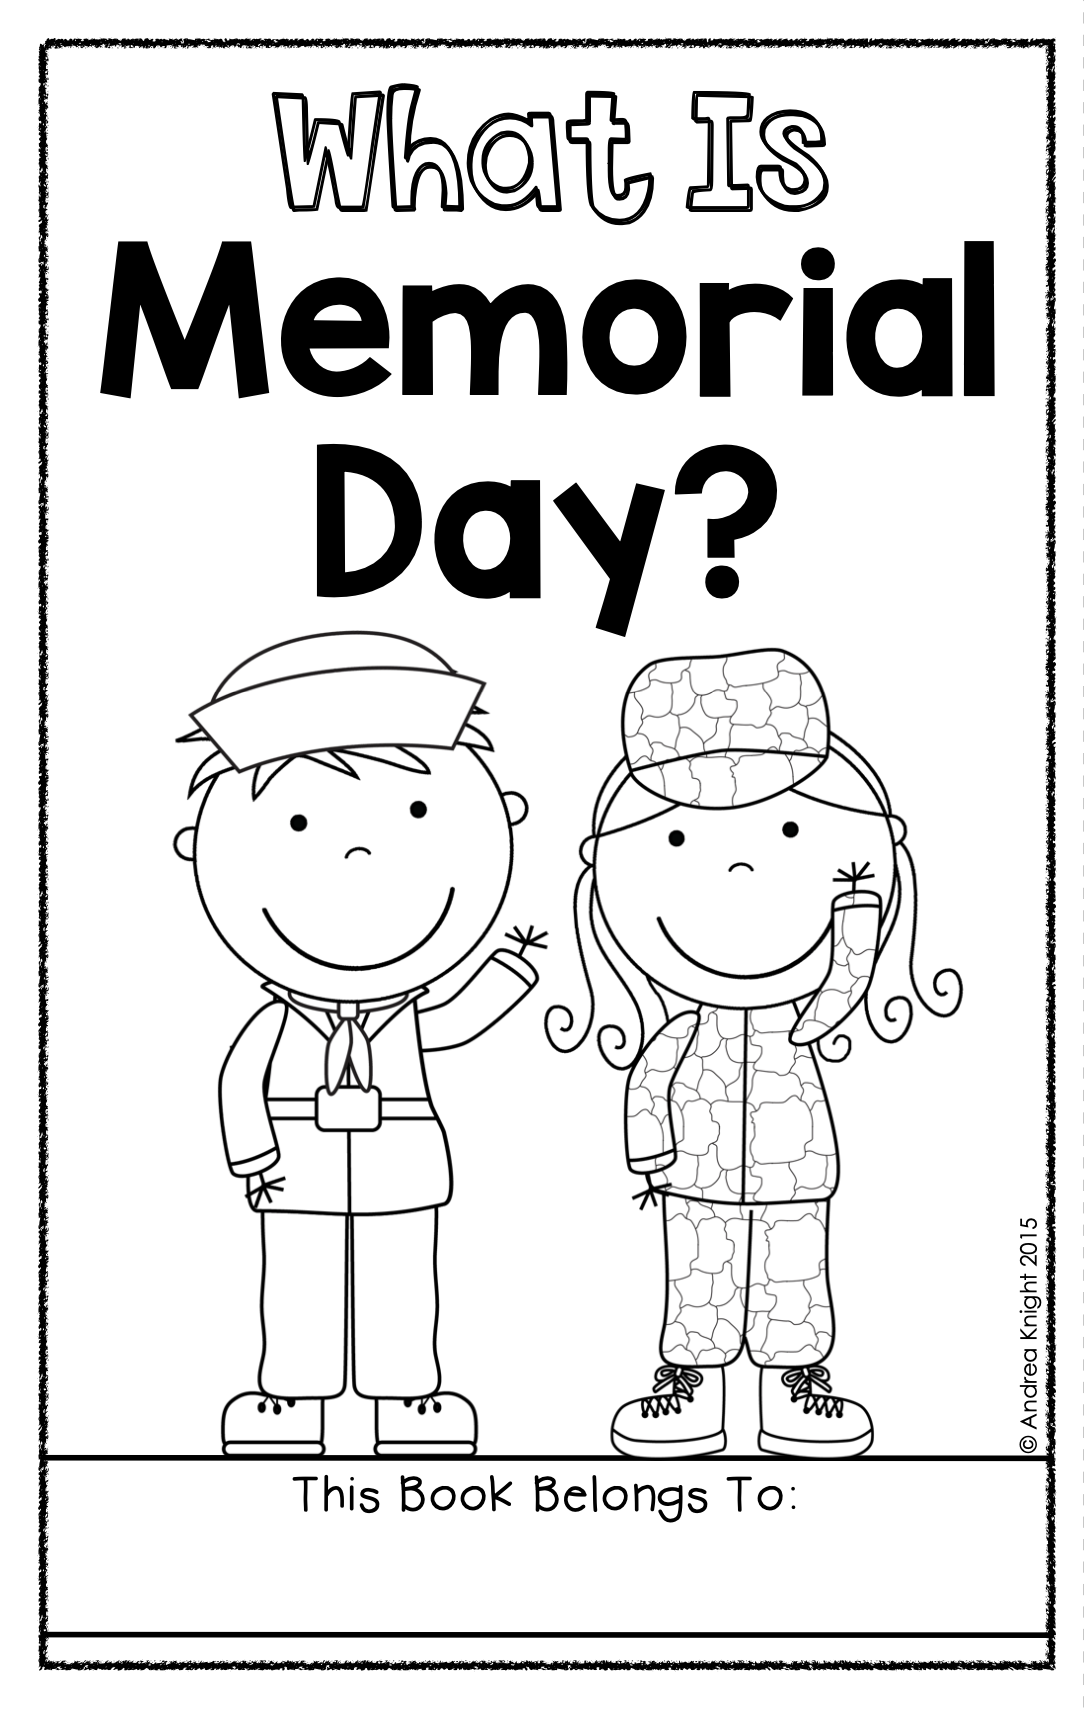 Memorial Day Book For Children Holiday Books What Is Memorial Day Memorial Day [ 1712 x 1084 Pixel ]